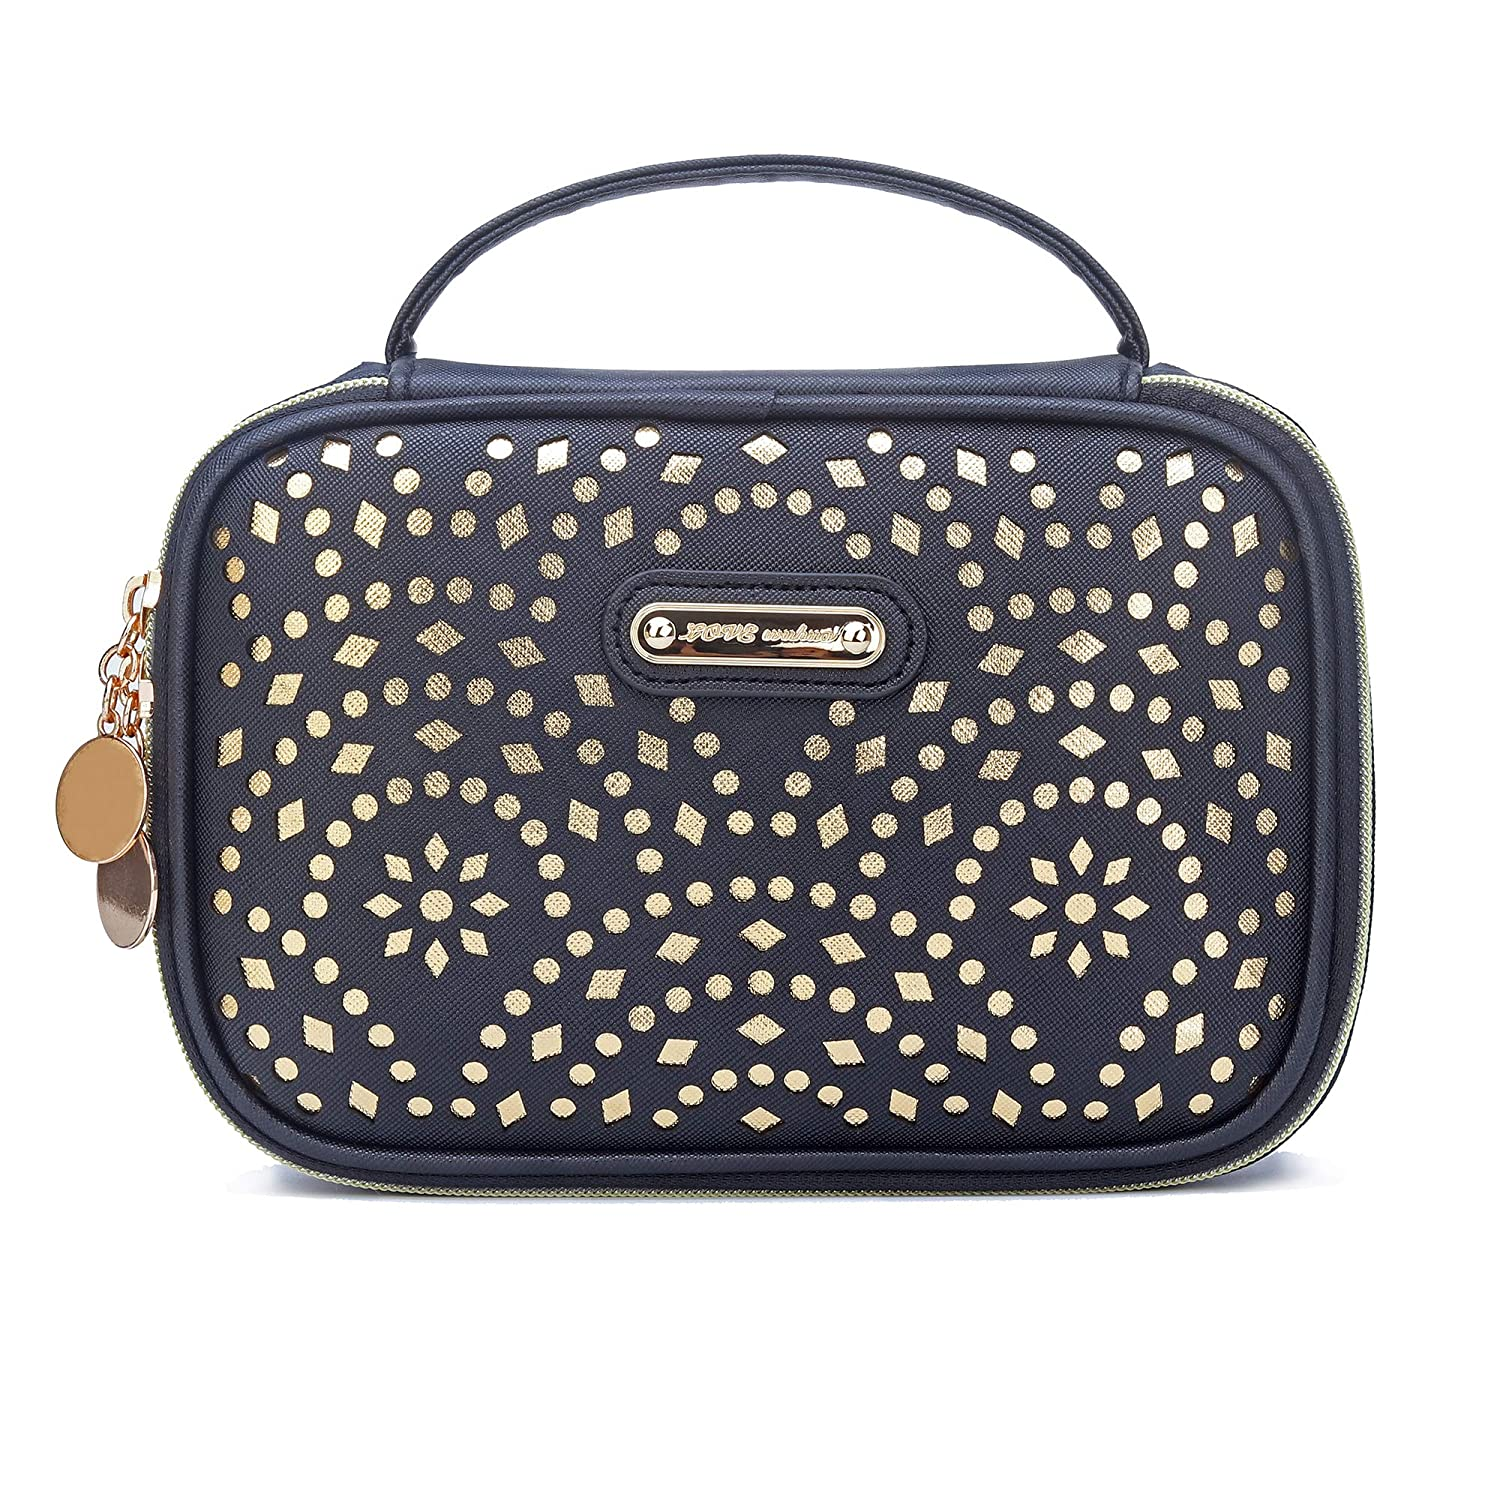 Makeup Bag, WuHua Gold Pattern Cosmetic Bag With Zipper,Toiletry/Travel Bag For Gril,Brushes Accessories Storage Bag,For Portable Hand Pouch Organizer